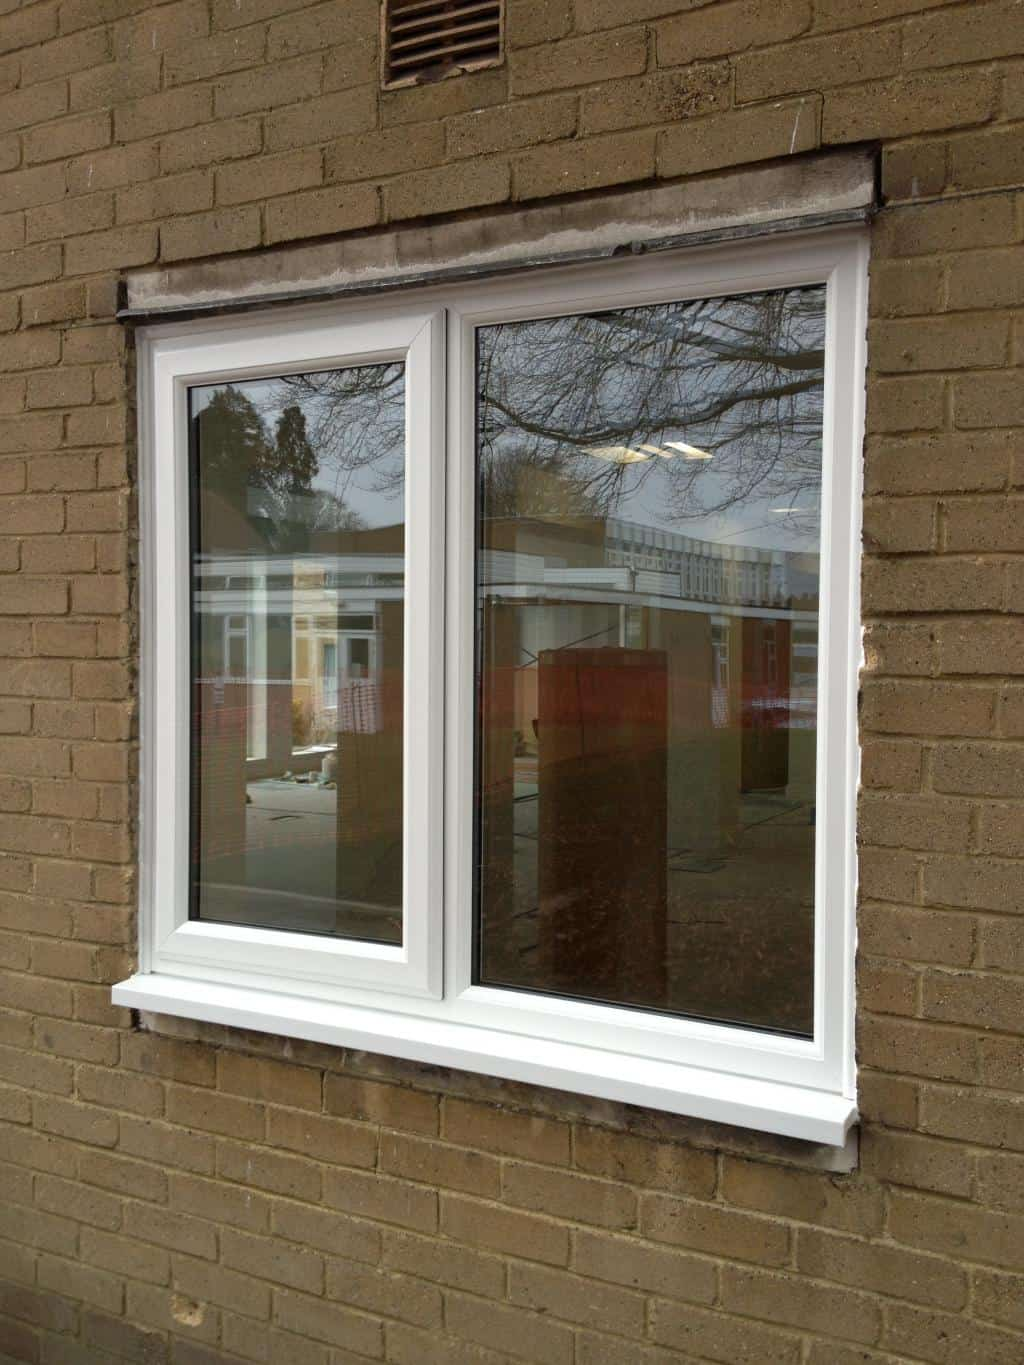 Upvc Windows And The Glass : A rated upvc windows archives dorking glass